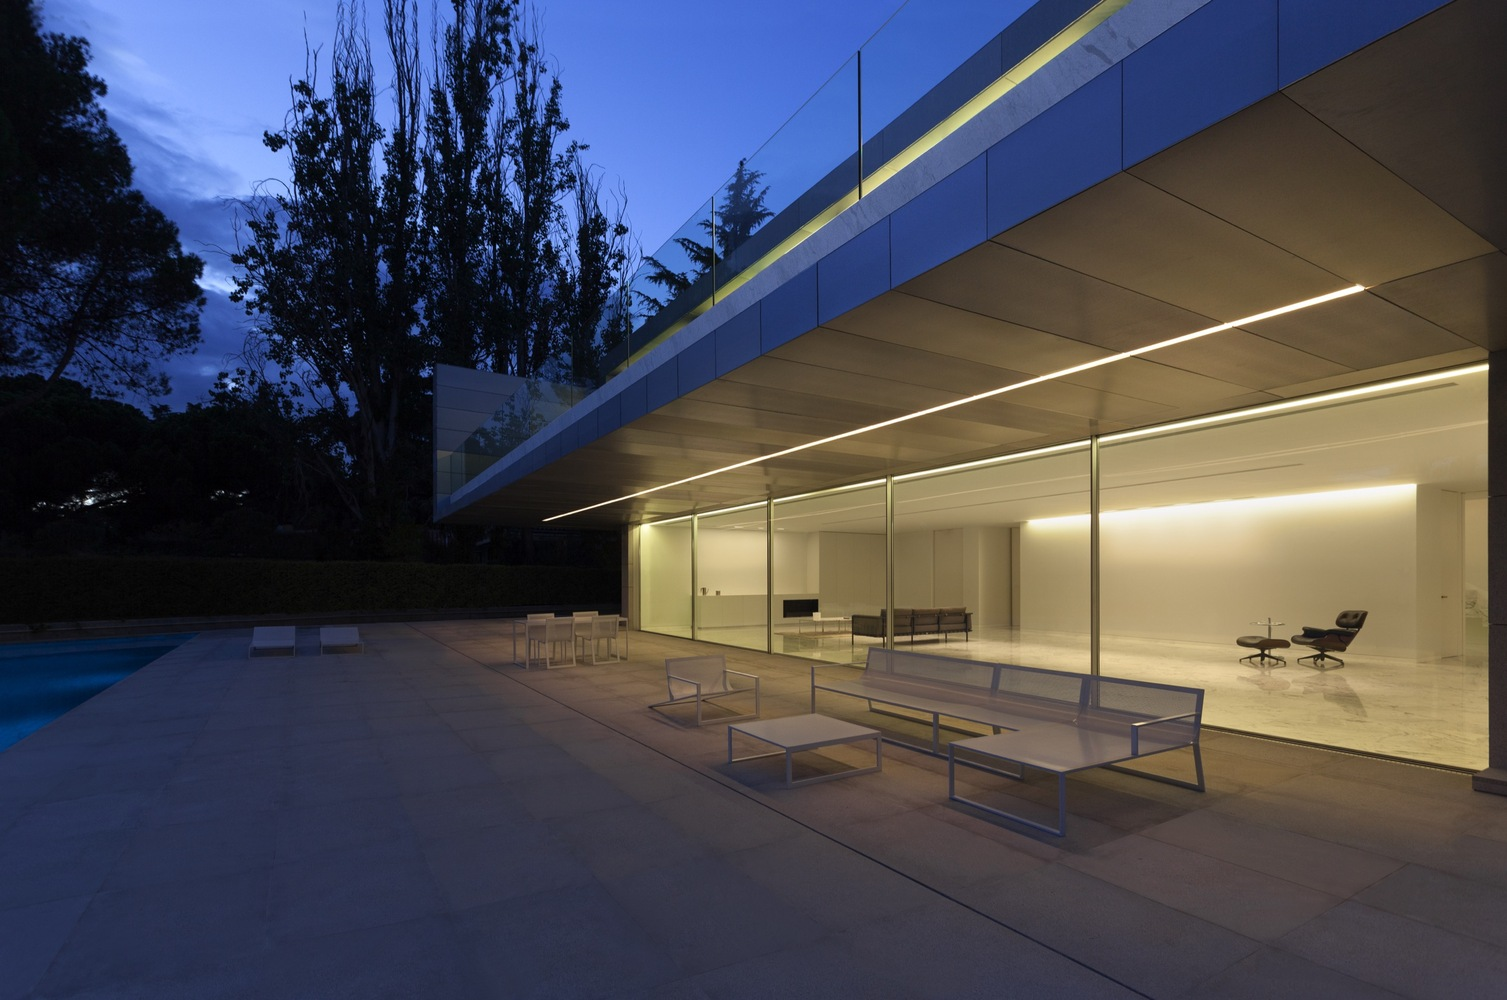 Aluminum House By Fran Silvestre Arquitectos In Madrid Spain